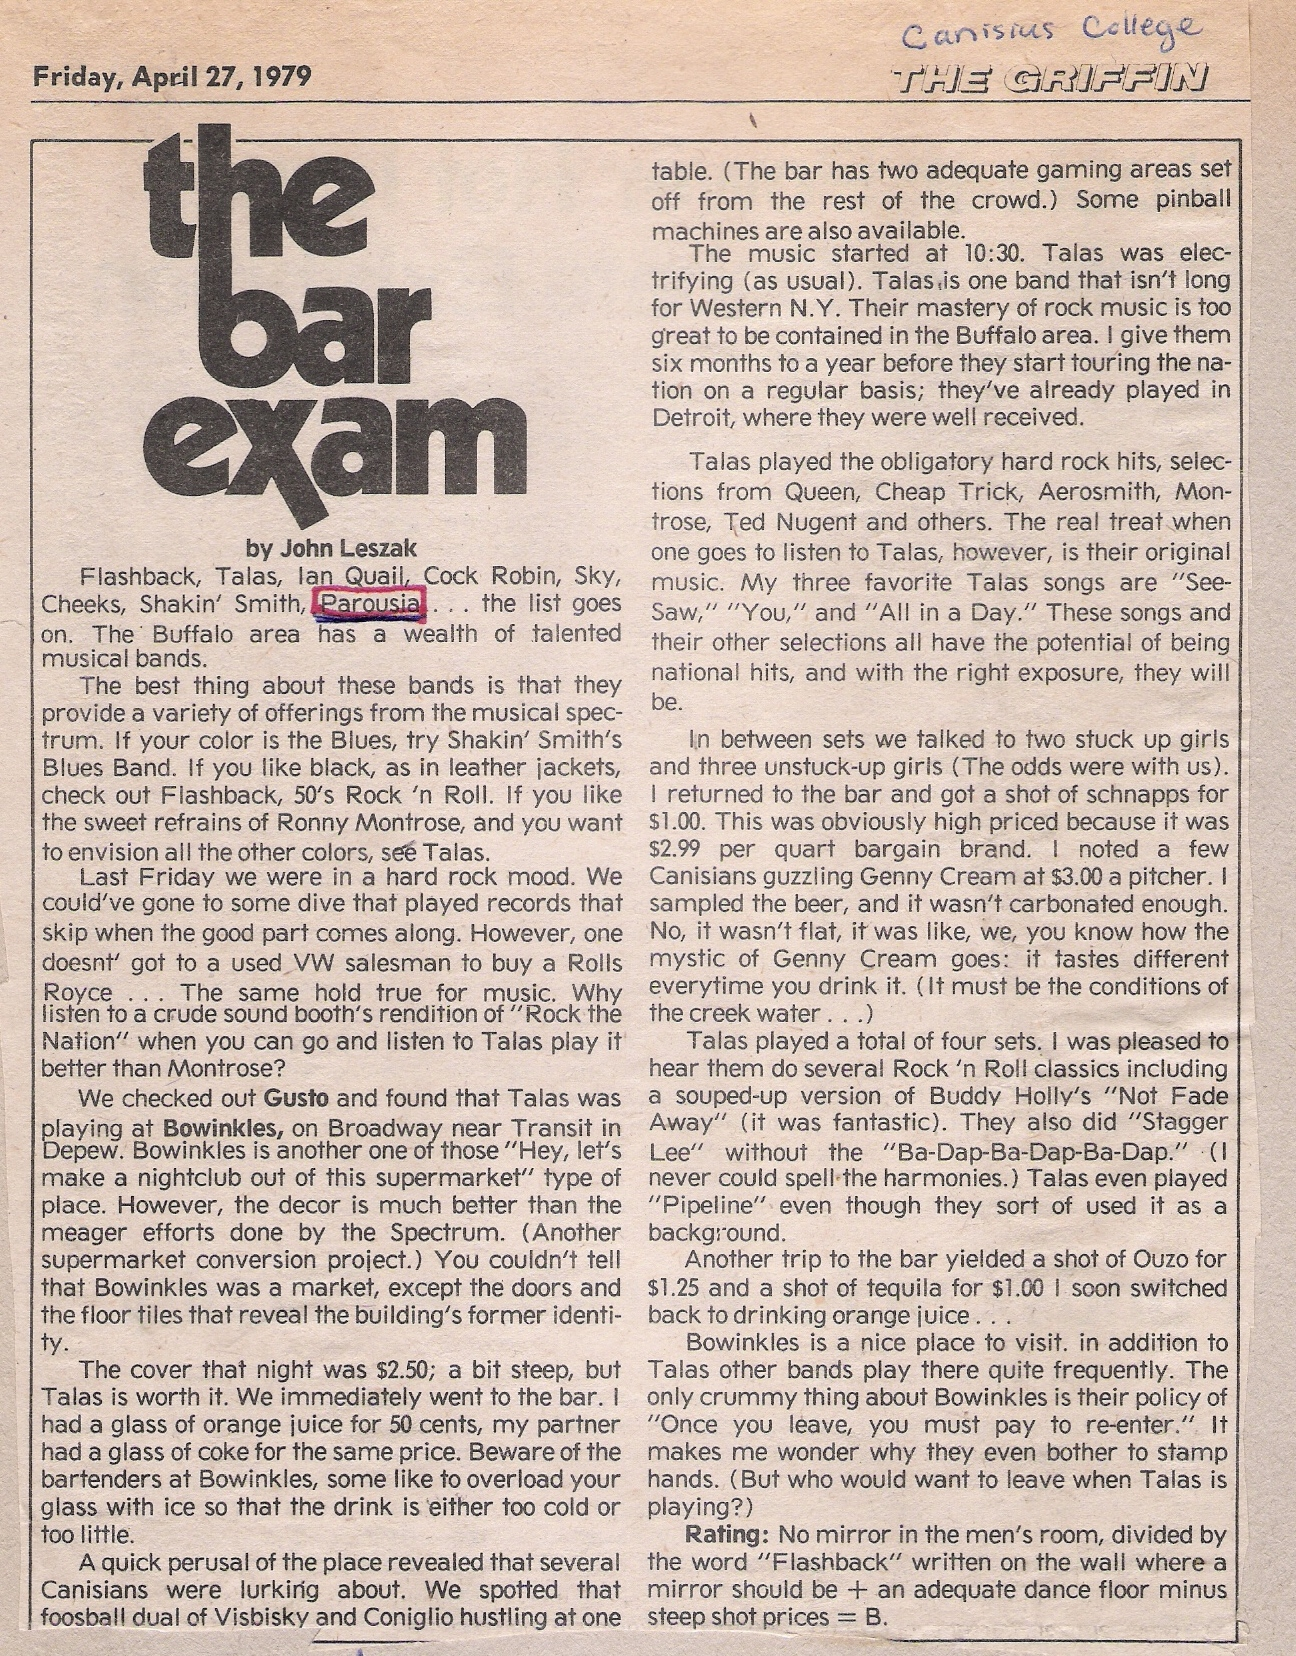 Review- Canisius College, 'The Griffin' Friday April 27, 1979